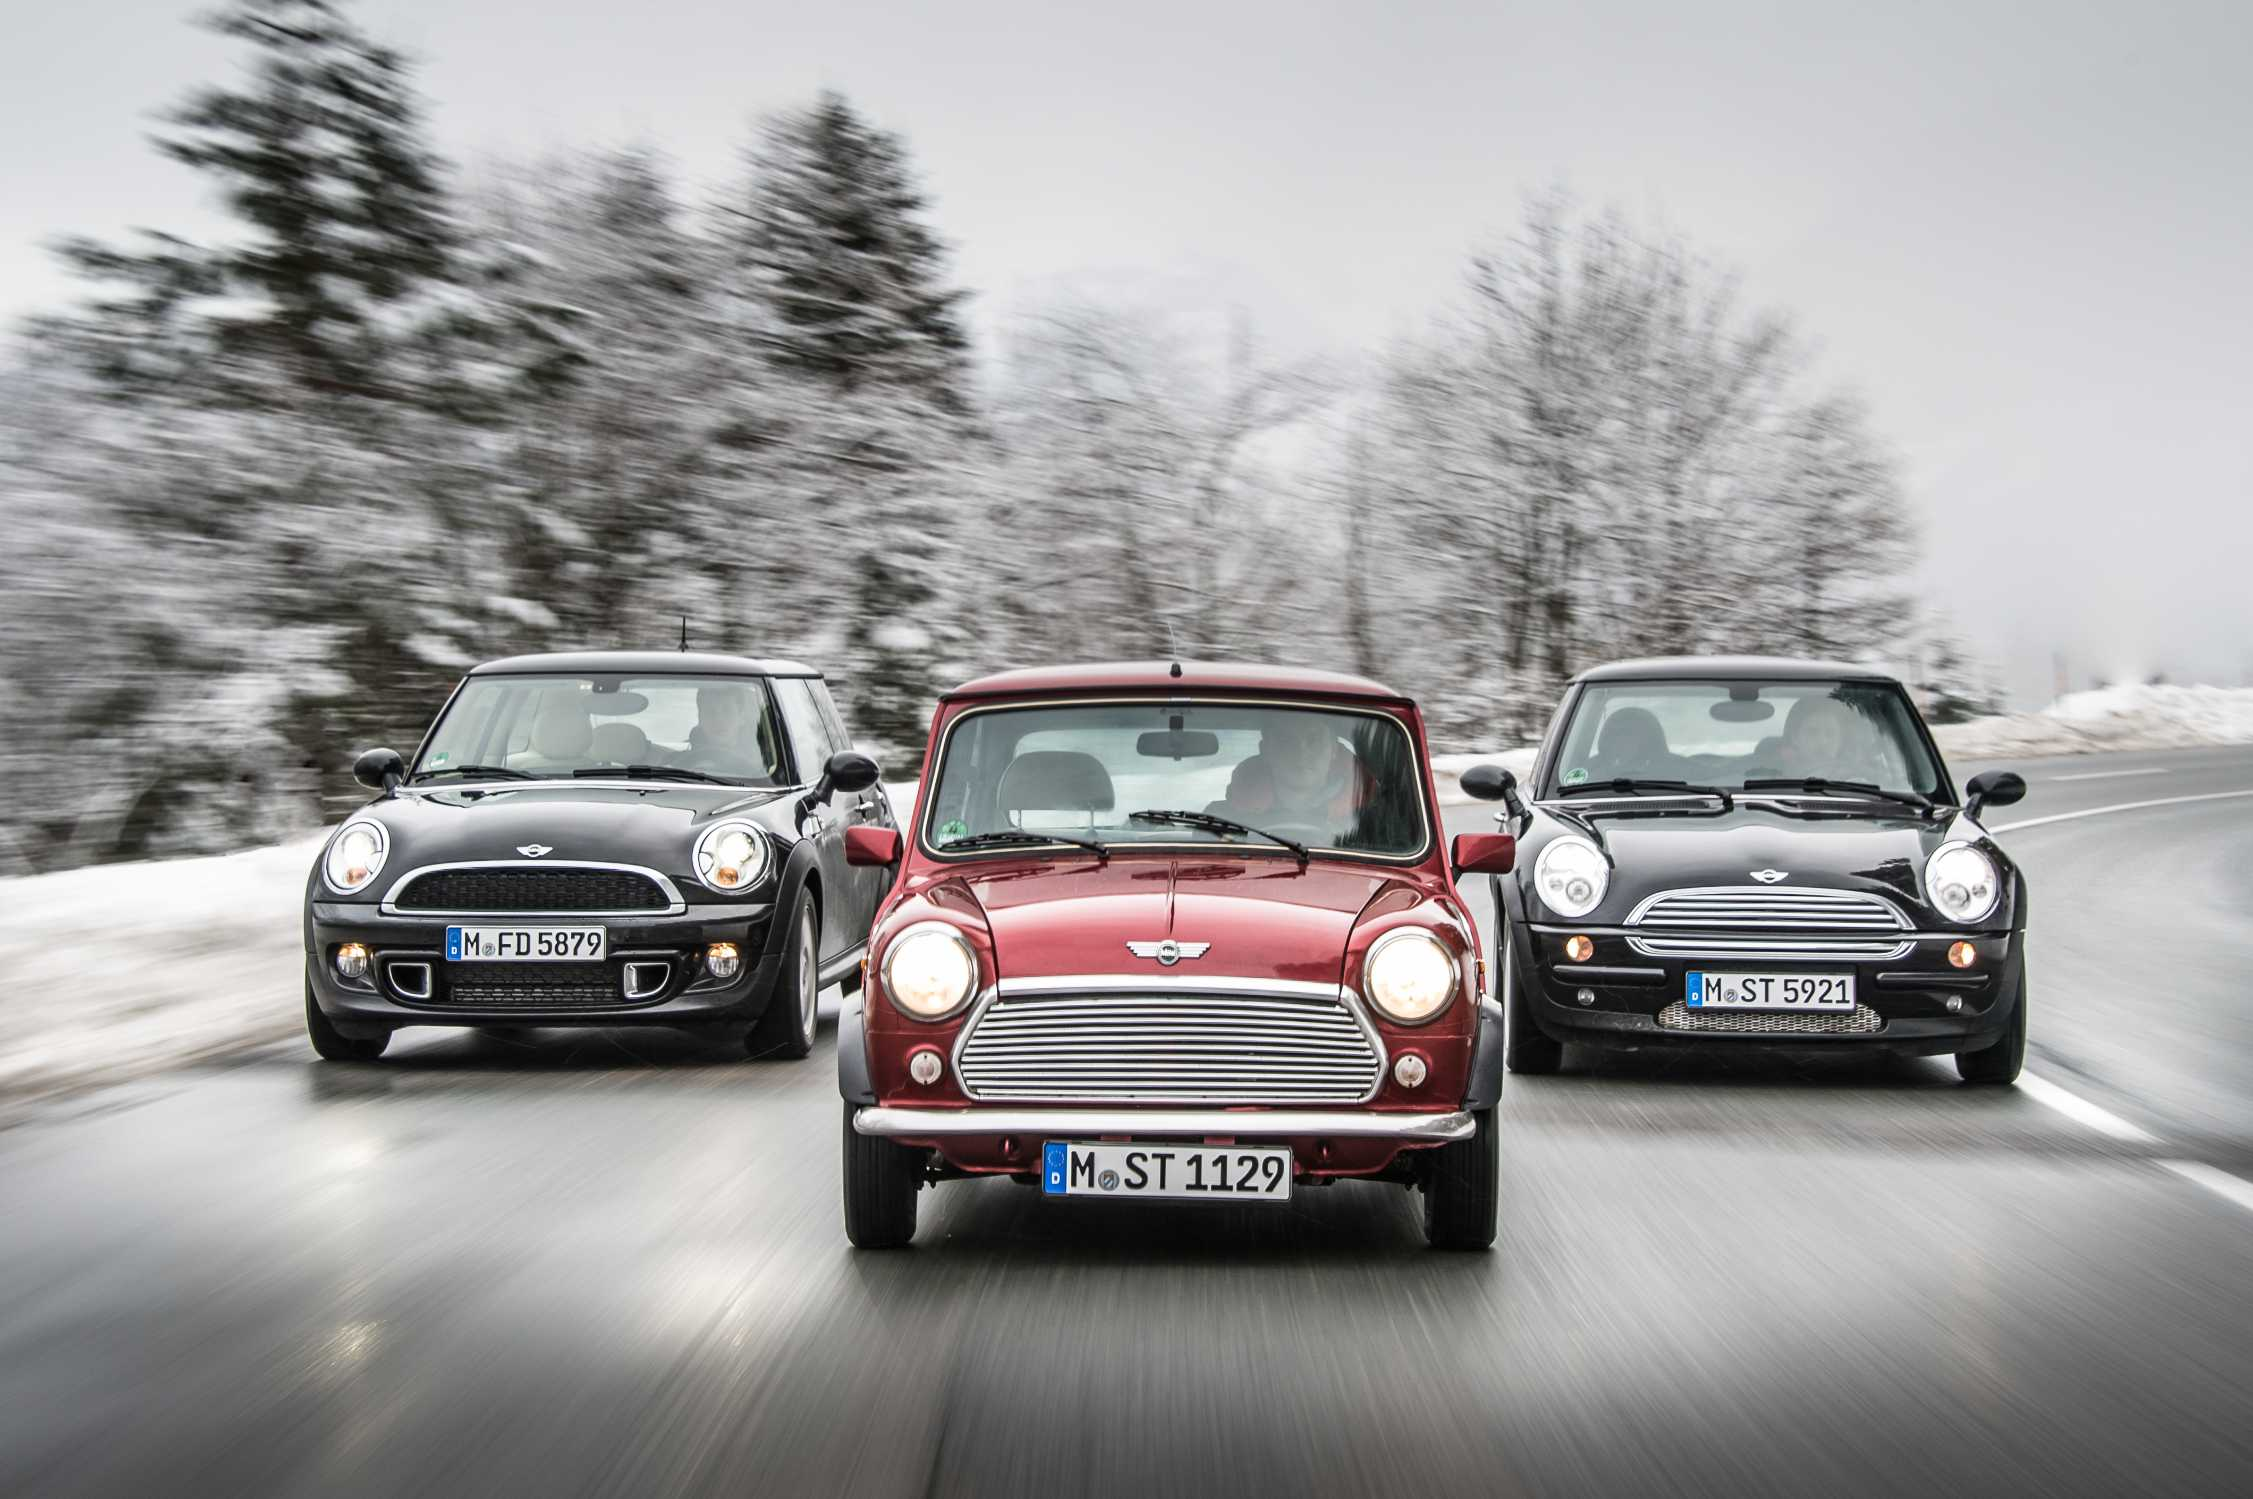 Three Generations Of Driving Fun The Mini Cooper And S Through Years